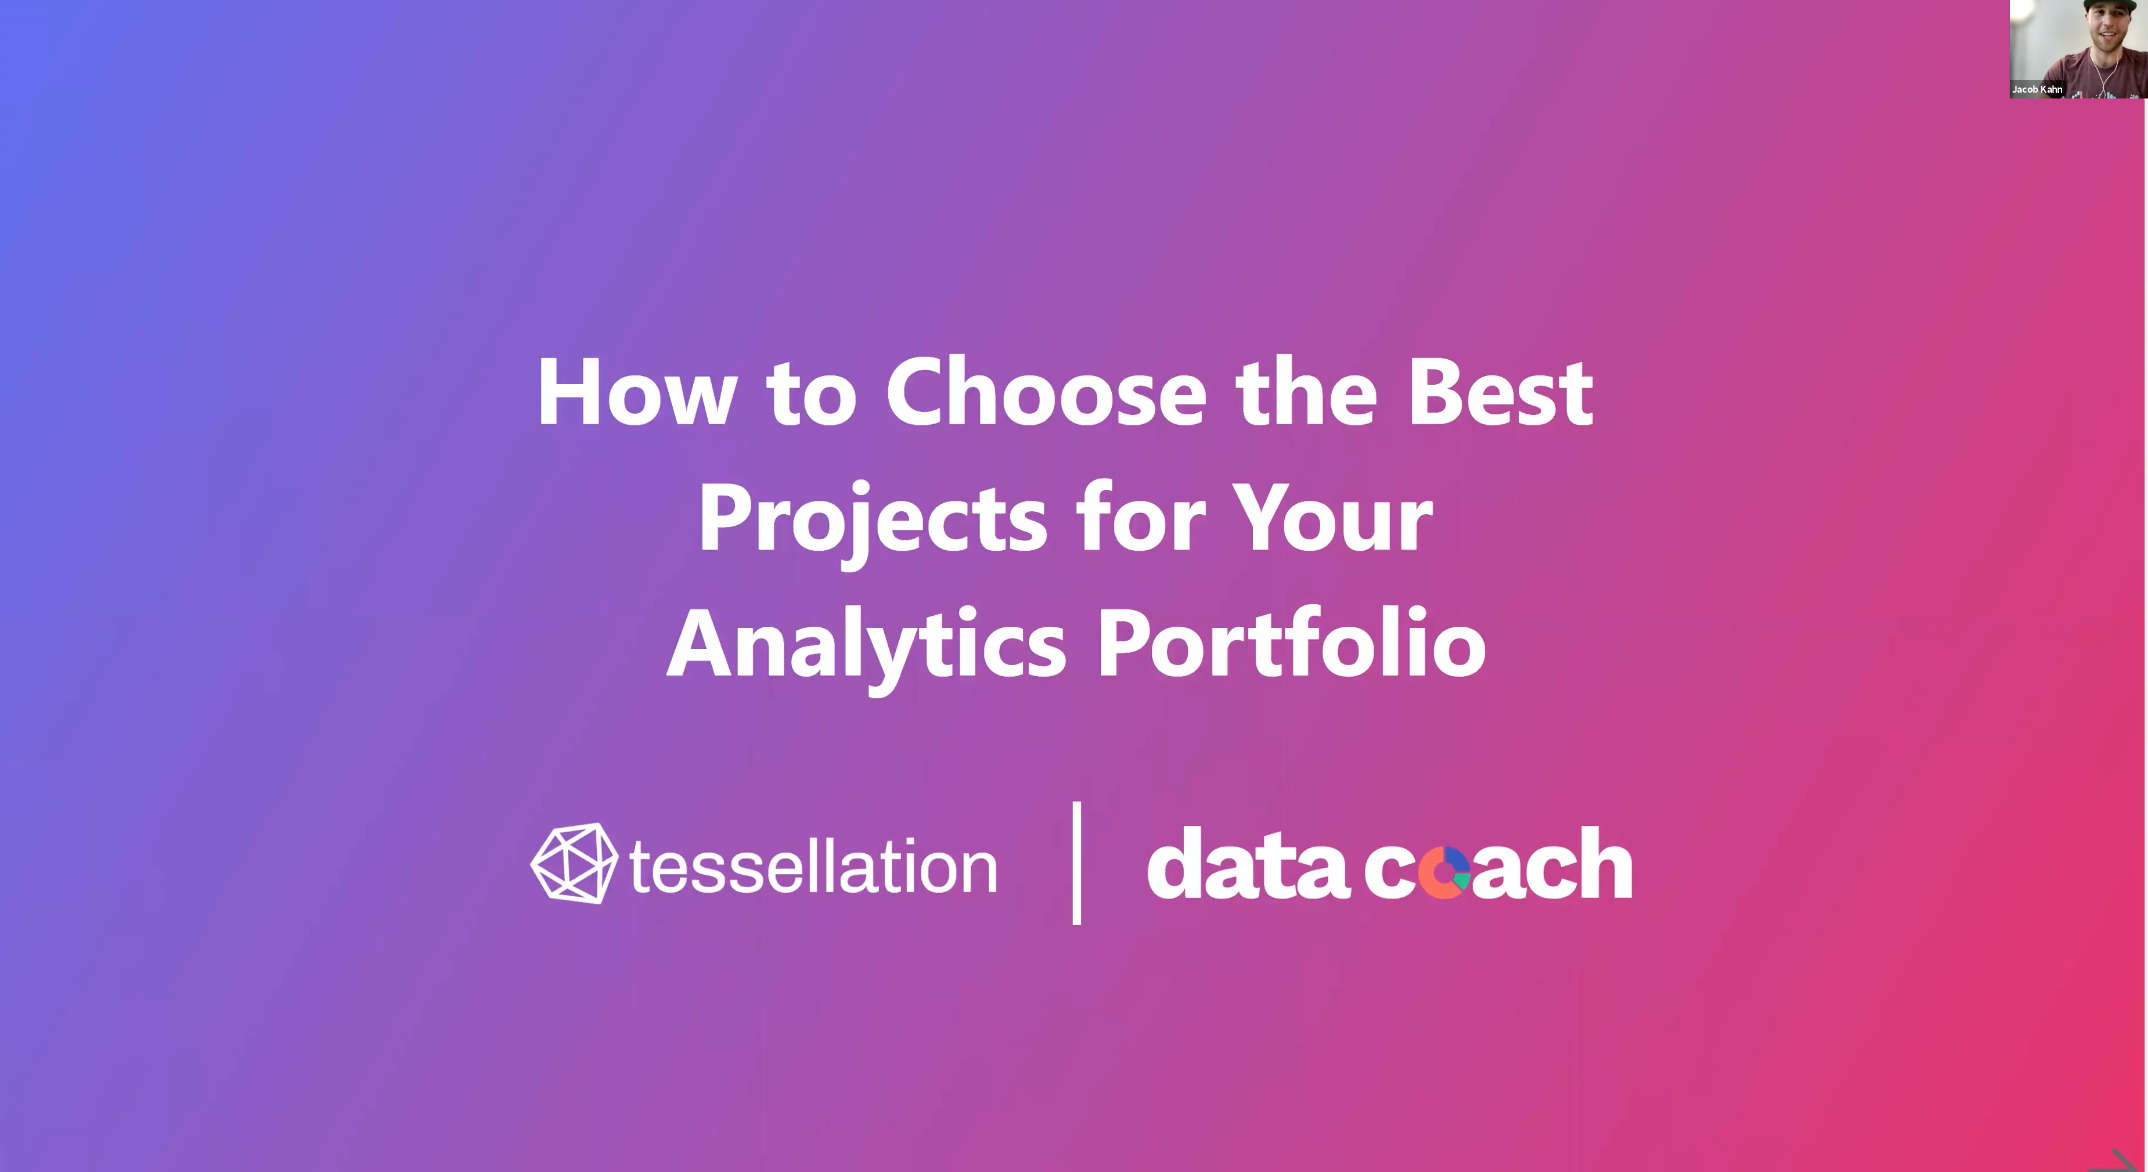 How to Choose the Best Projects for your Data Analytics Portfolio